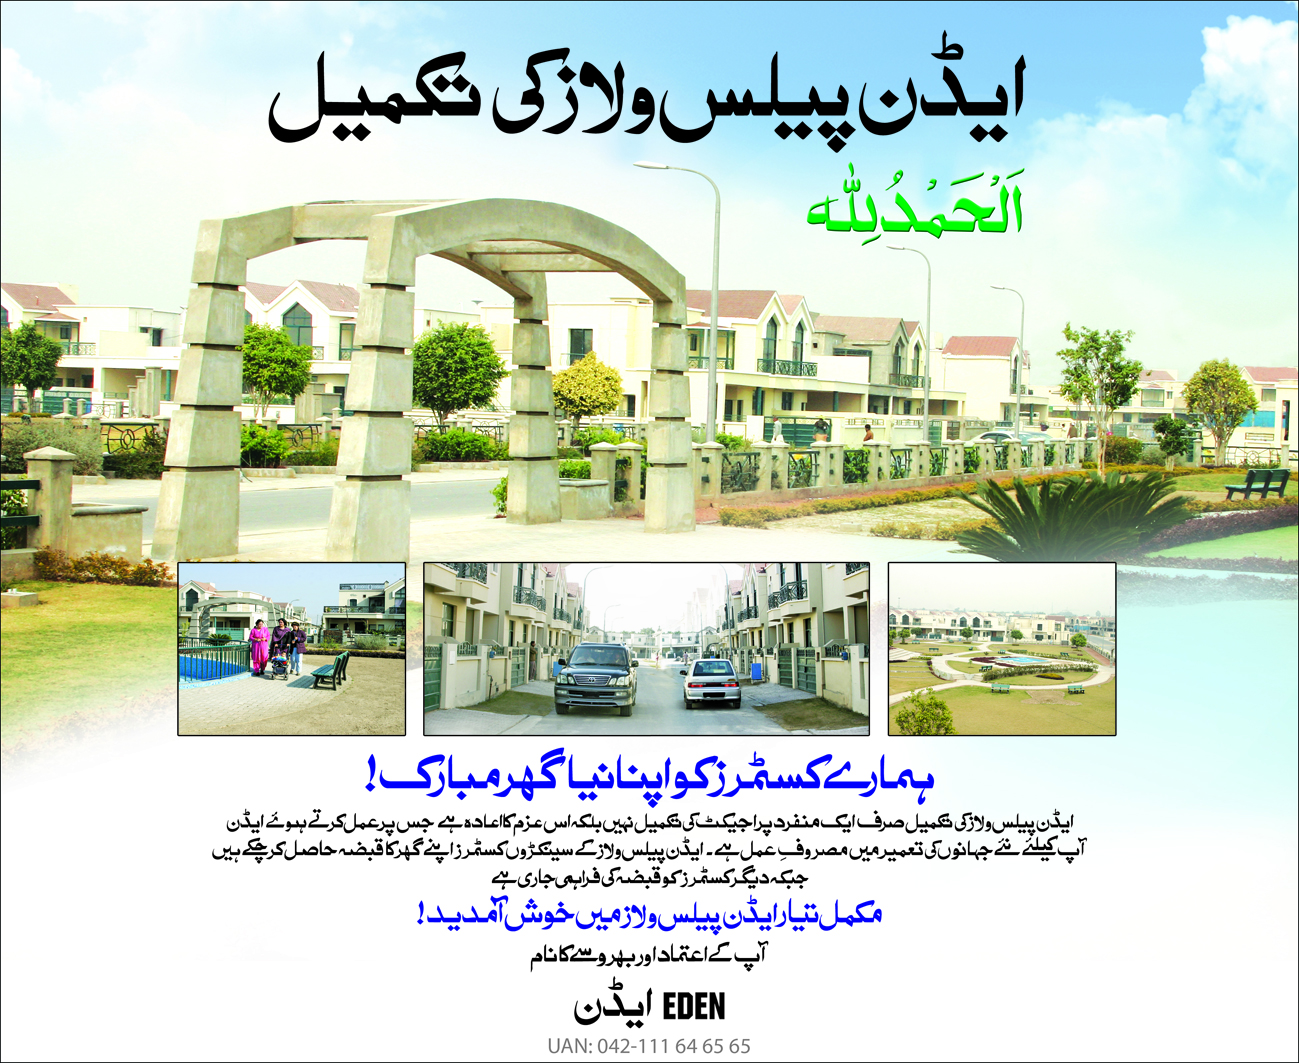 Jan-31 (2011) Eden Palace Villas Ad 27x8 Urdu Colour copy